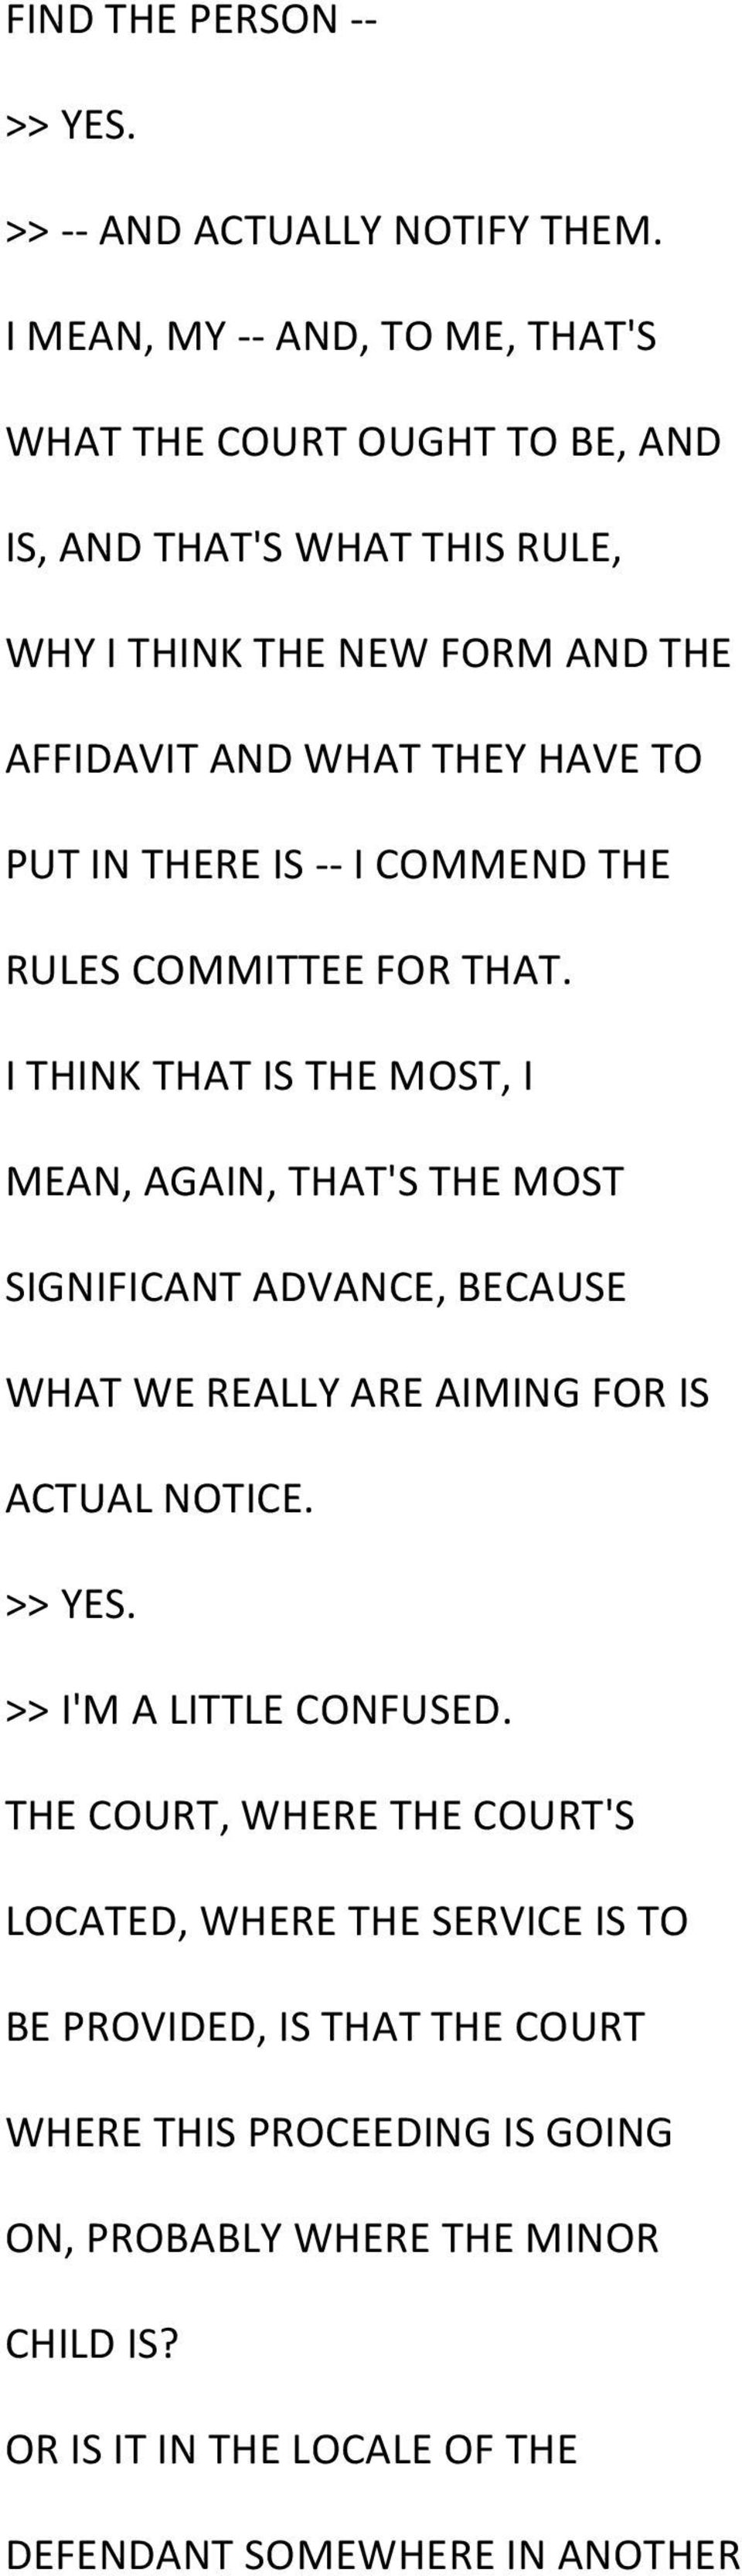 THERE IS - - I COMMEND THE RULES COMMITTEE FOR THAT.